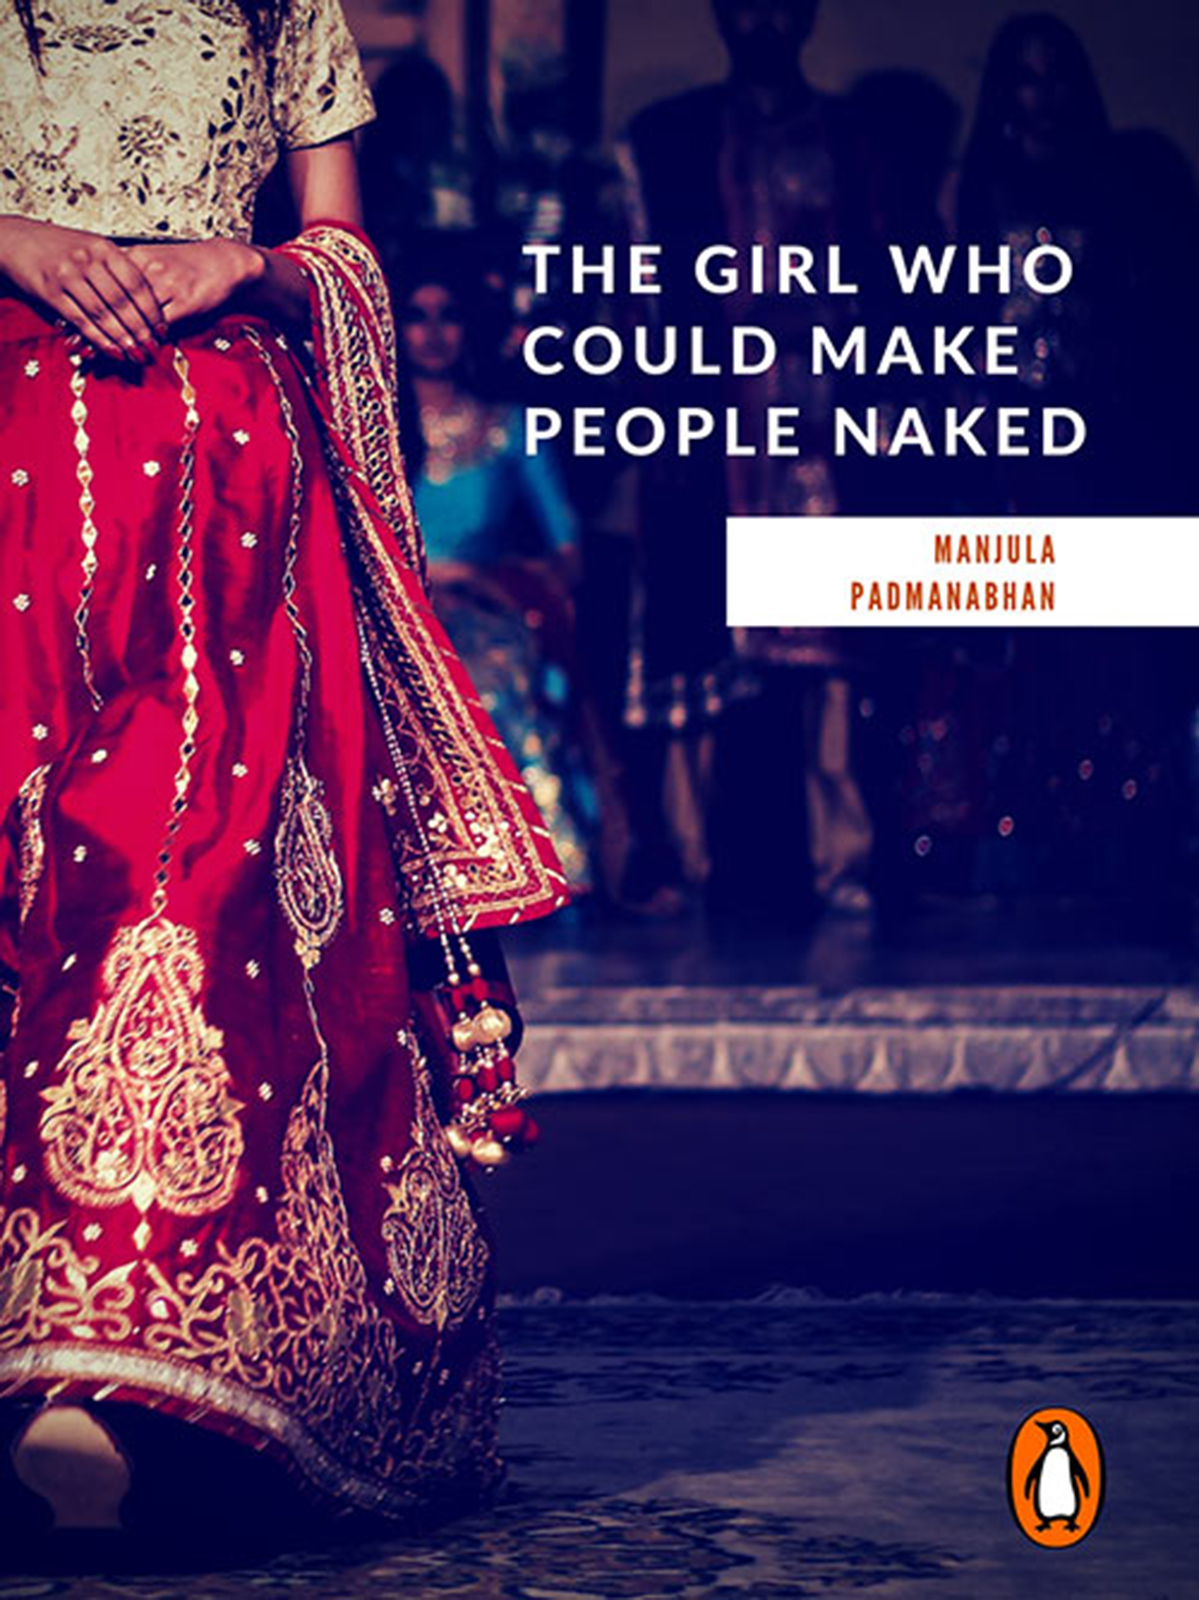 The Girl Who Could Make People Naked